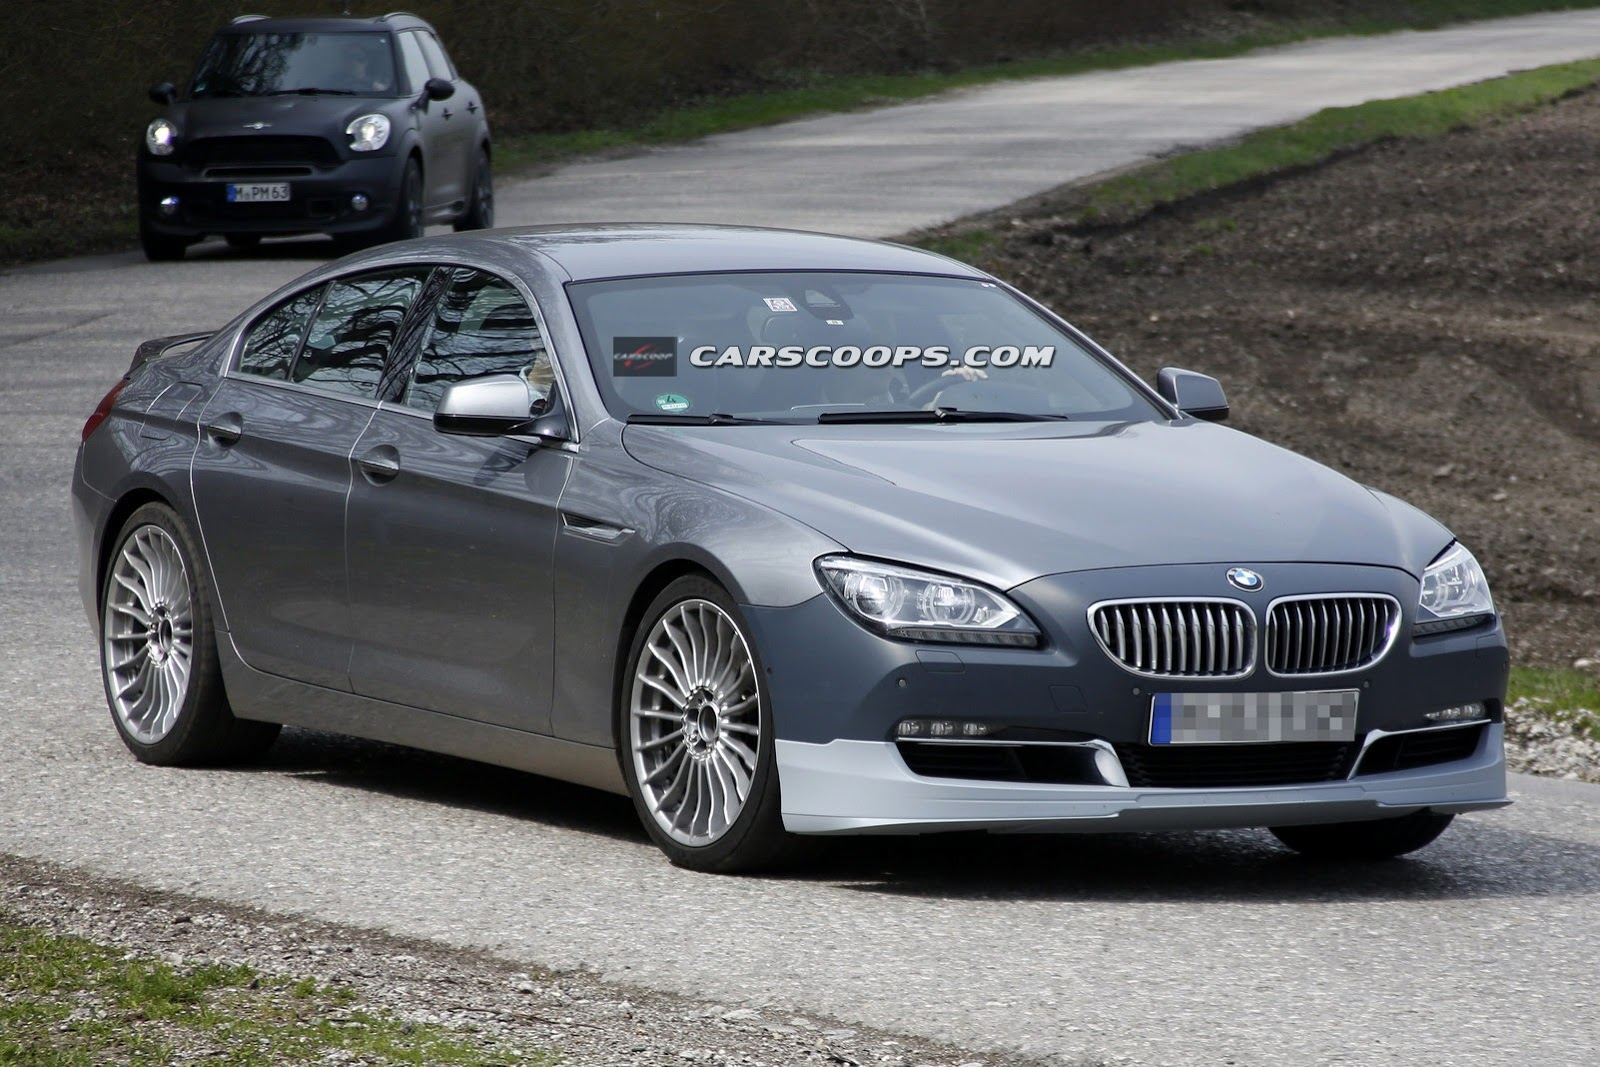 Spyshots Alpina B Gran Coupe BiTurbo Snapped In Germany GTspirit - Bmw alpina b6 biturbo price